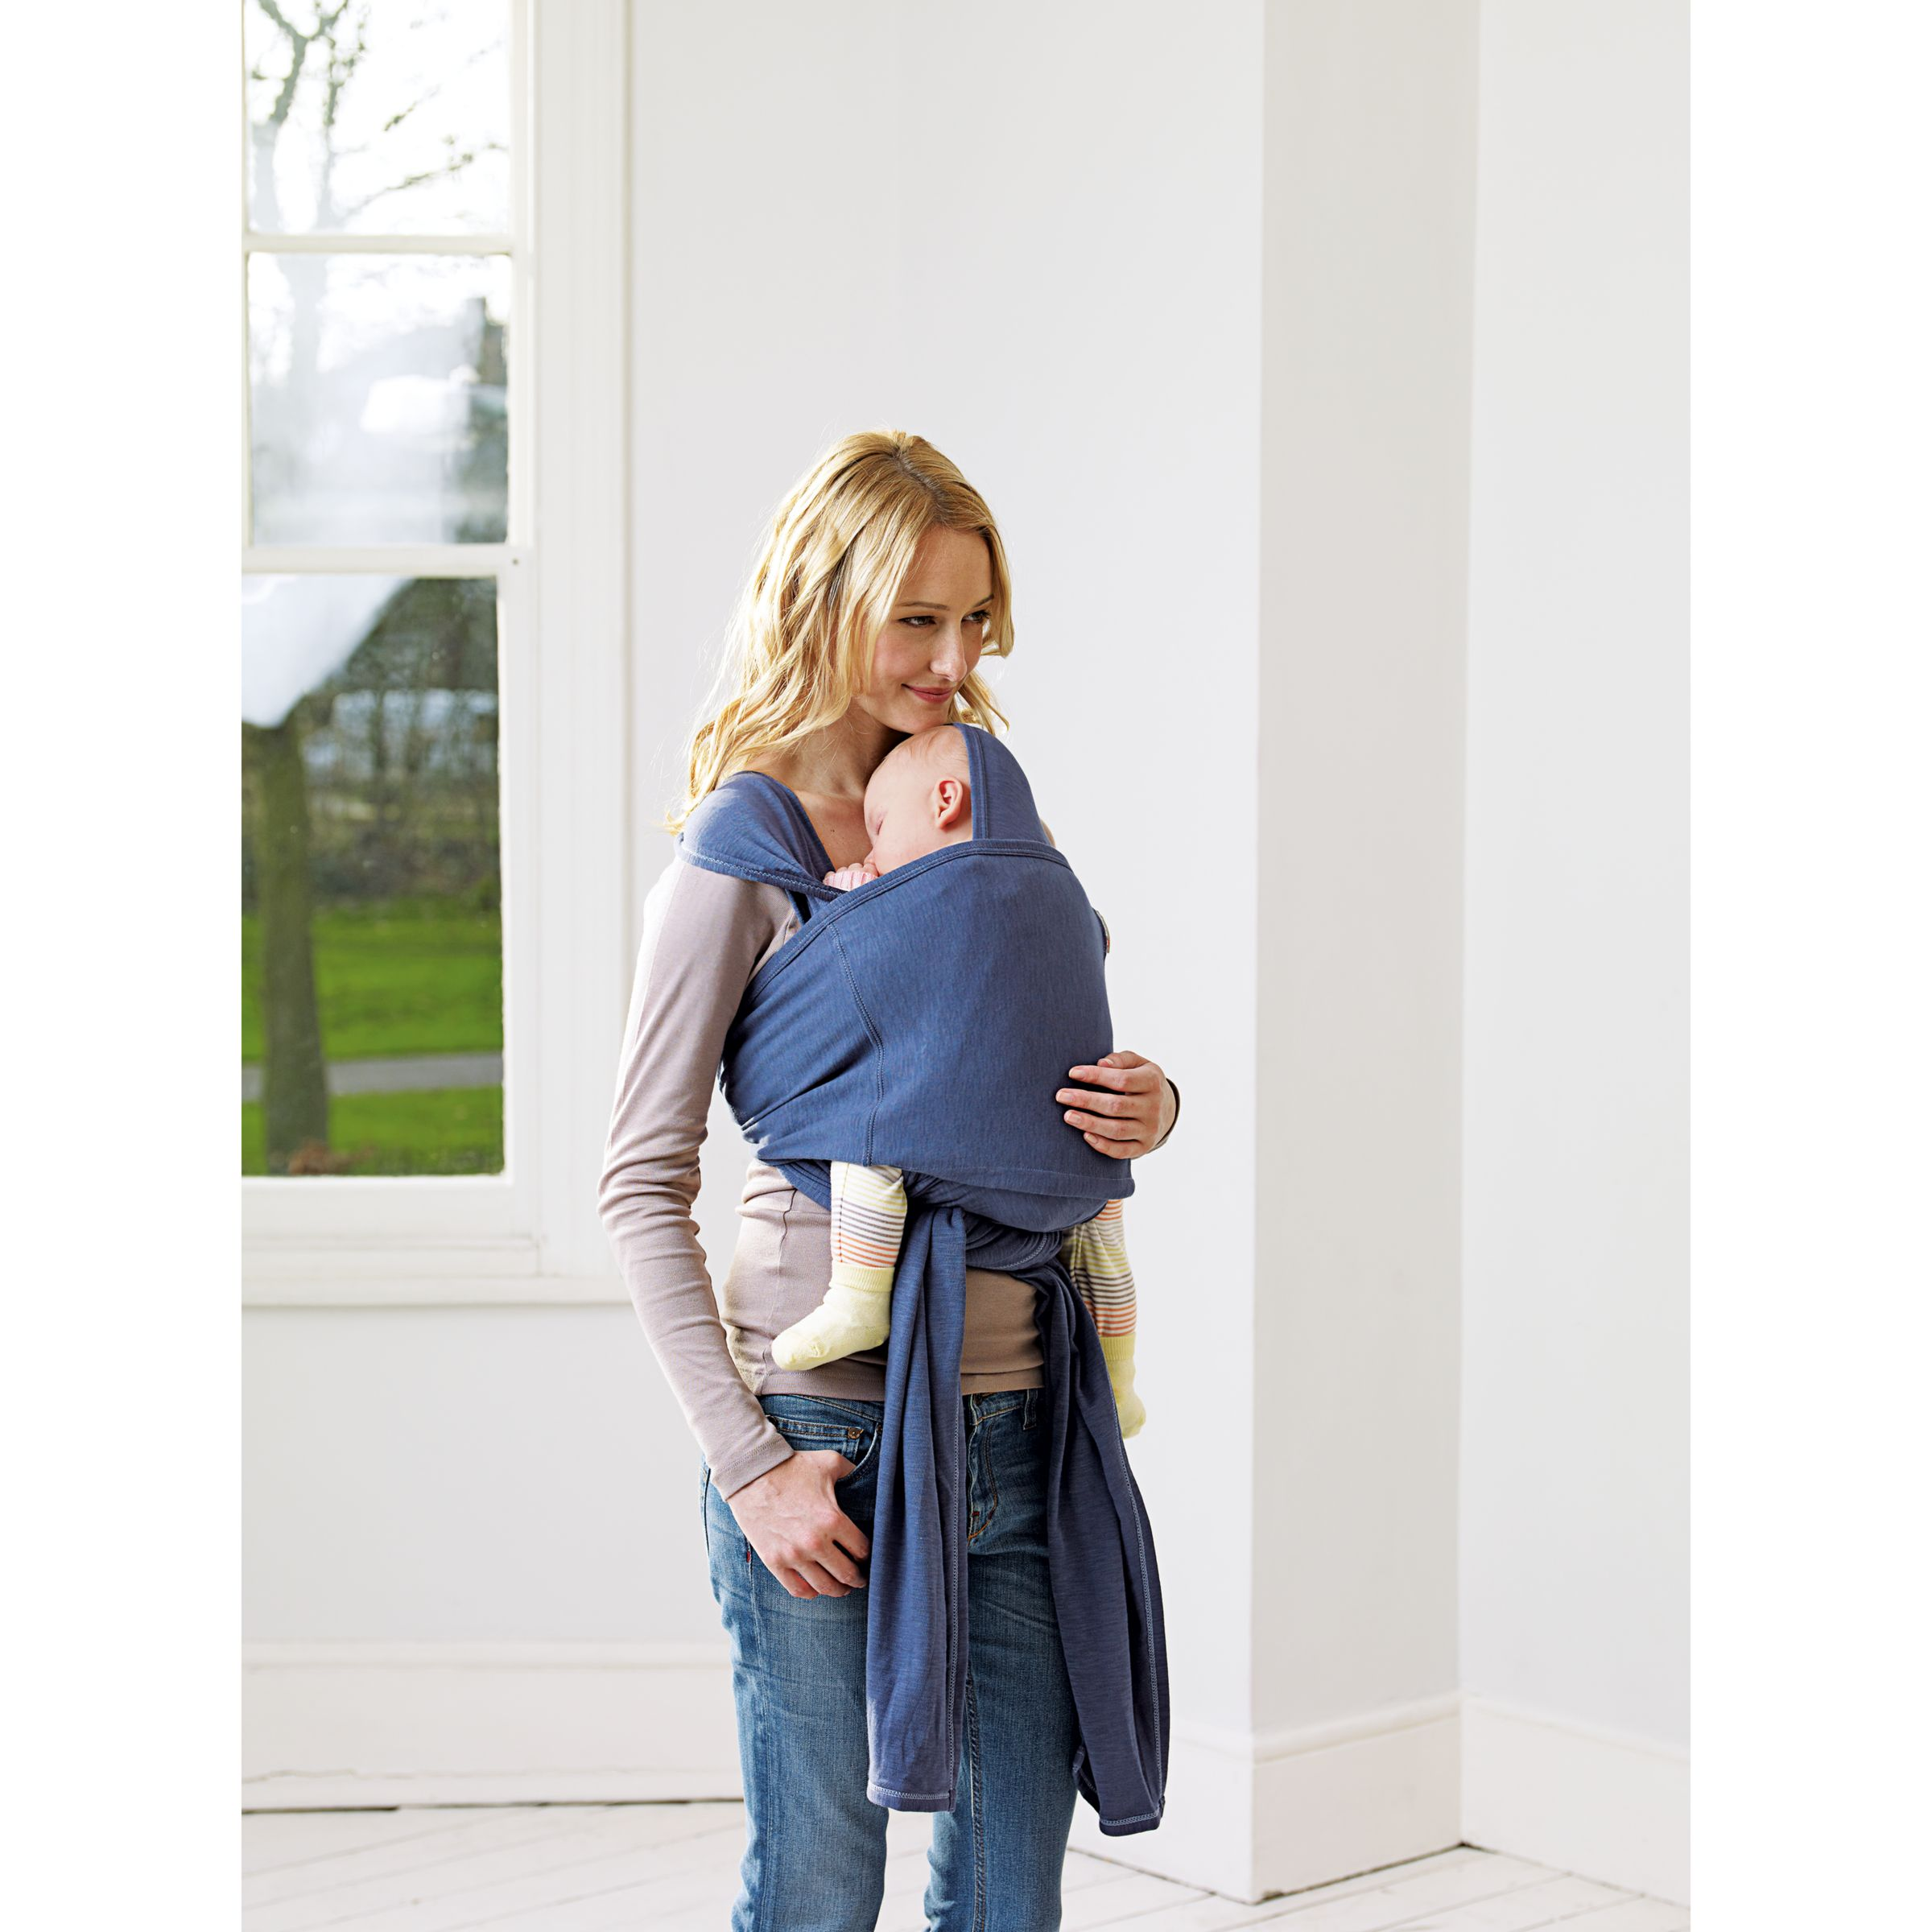 Video: How to use baby carriers and slings